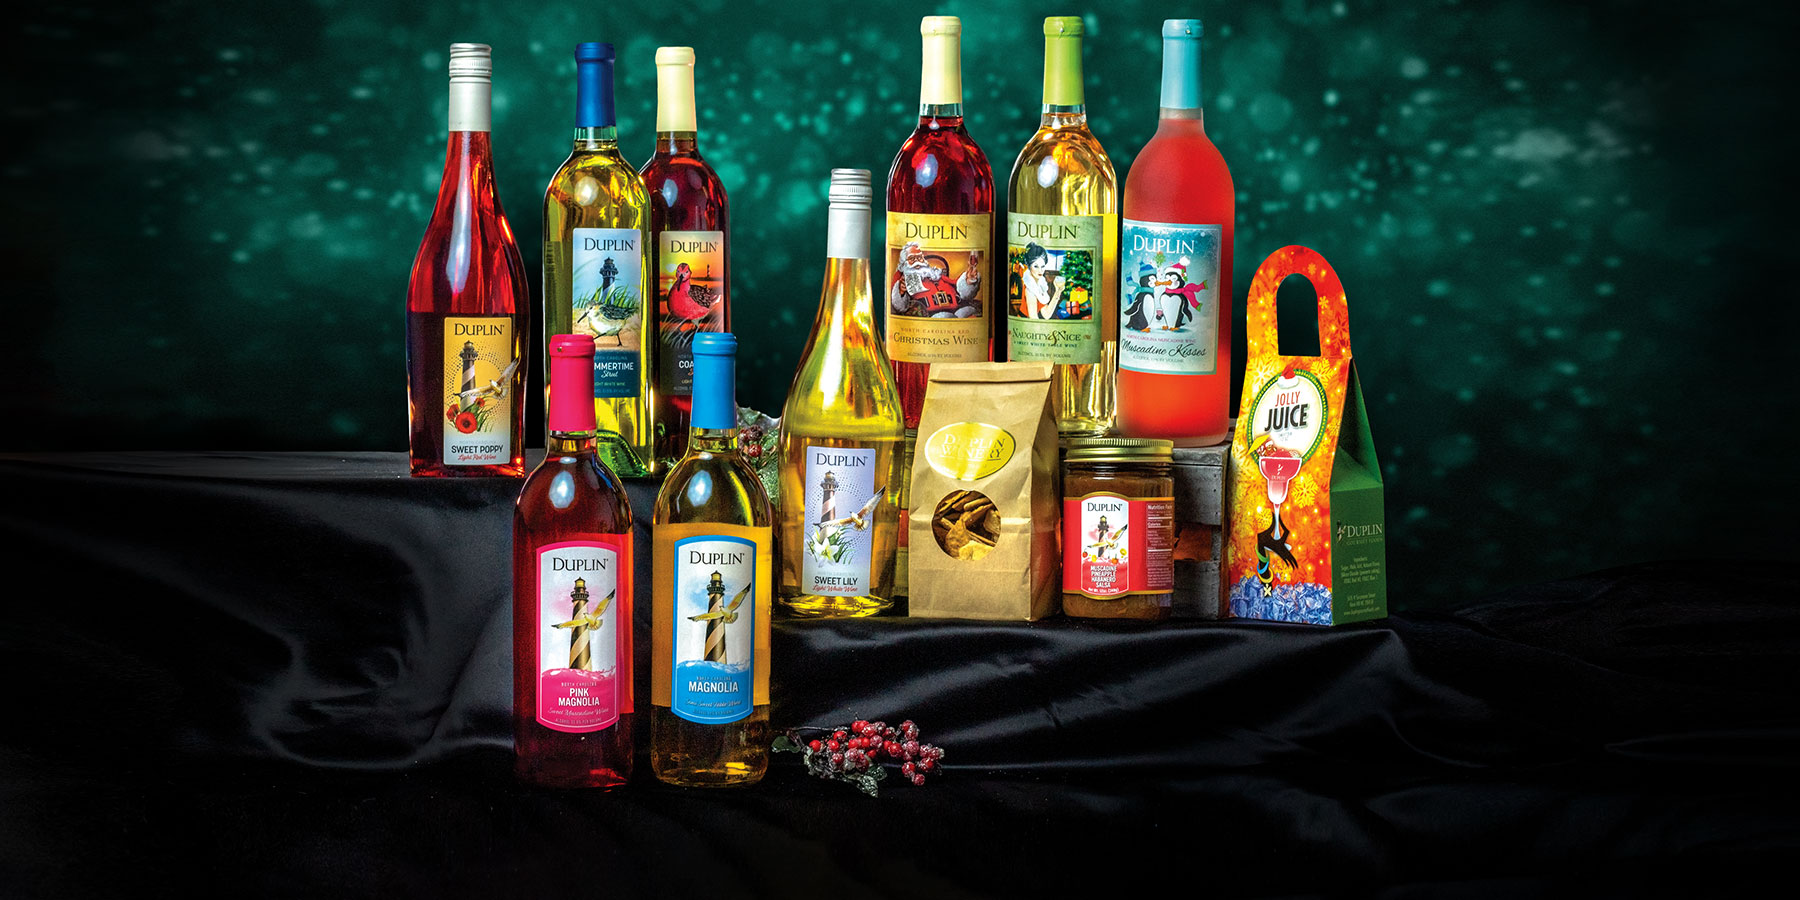 Duplin Winery Christmas At Home Wine Tasting Kits include wines we serve in our tasting rooms.